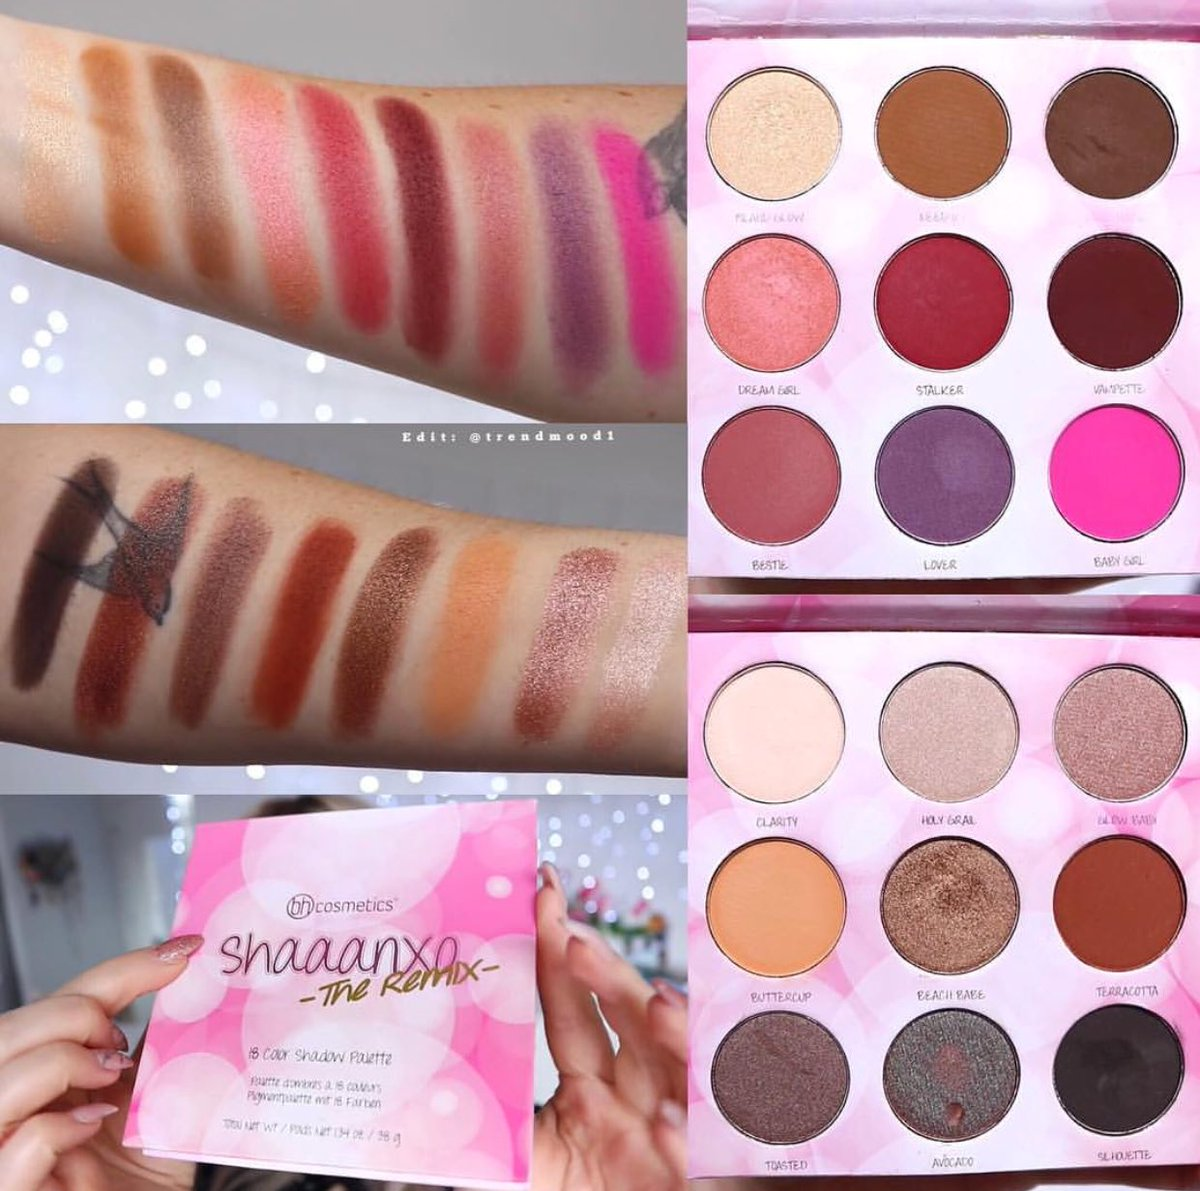 Ultimate Lips - 28 Color Lipstick Palette by BH Cosmetics #17